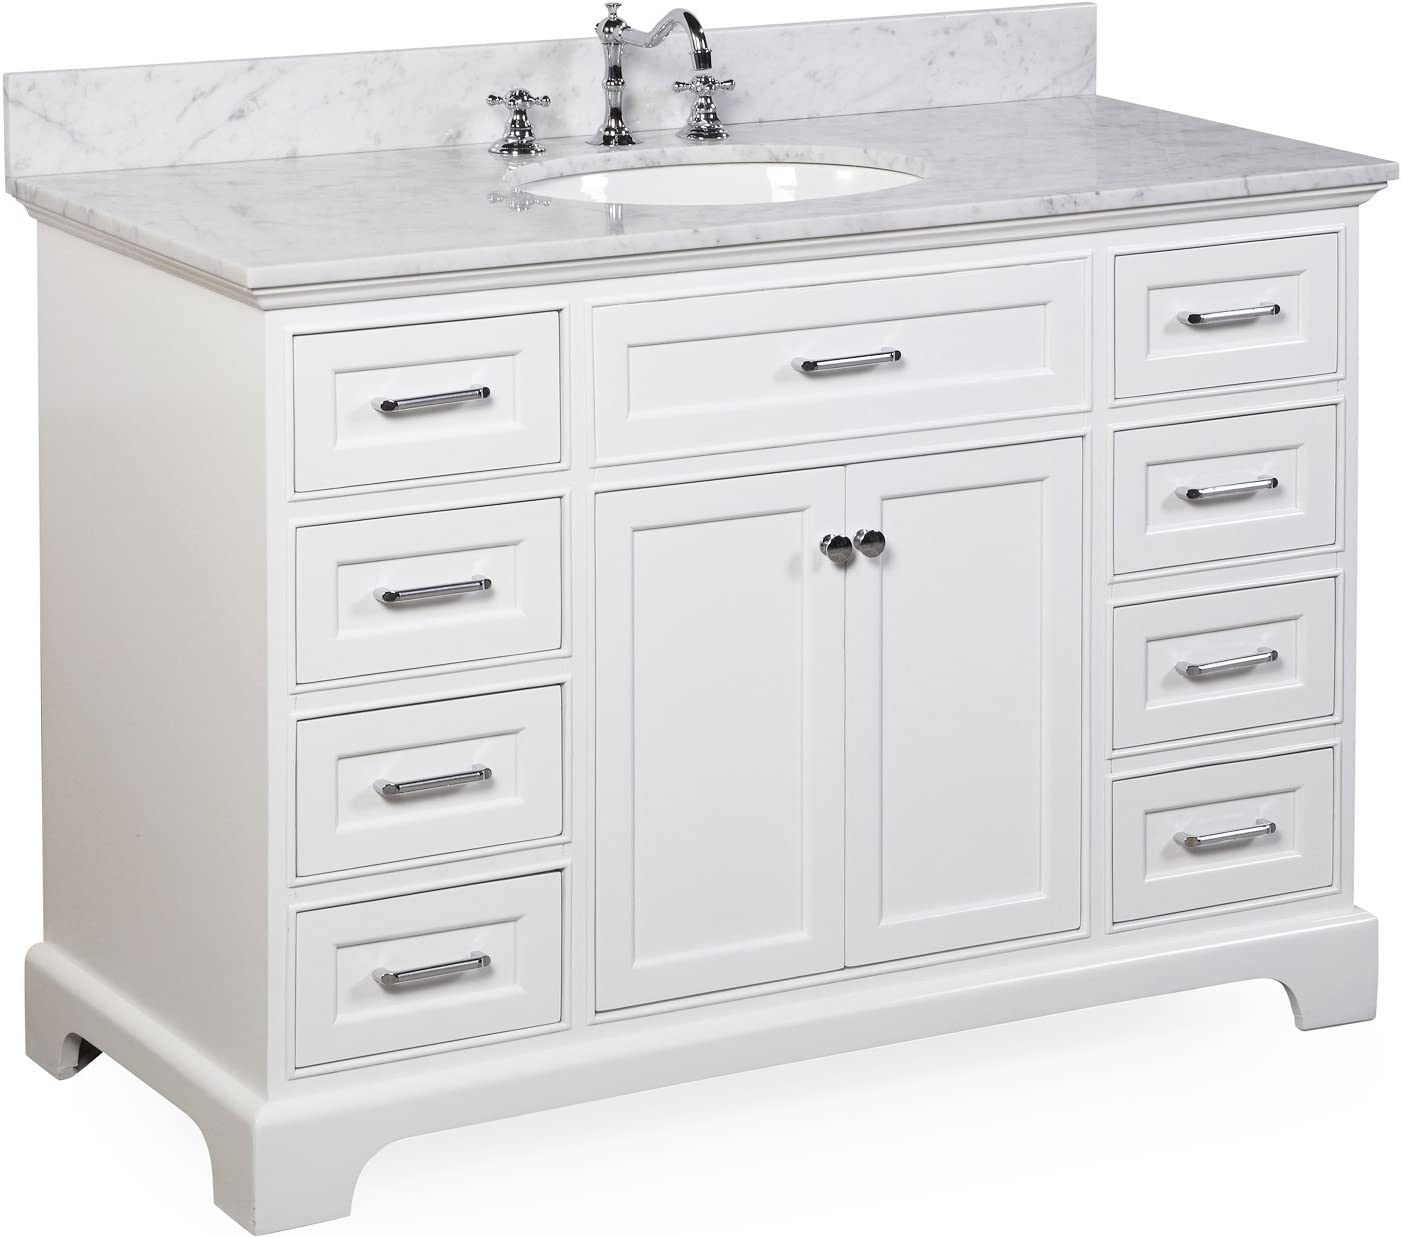 Aria 48-inch Bathroom Vanity Carrara White Includes a White Cabinet